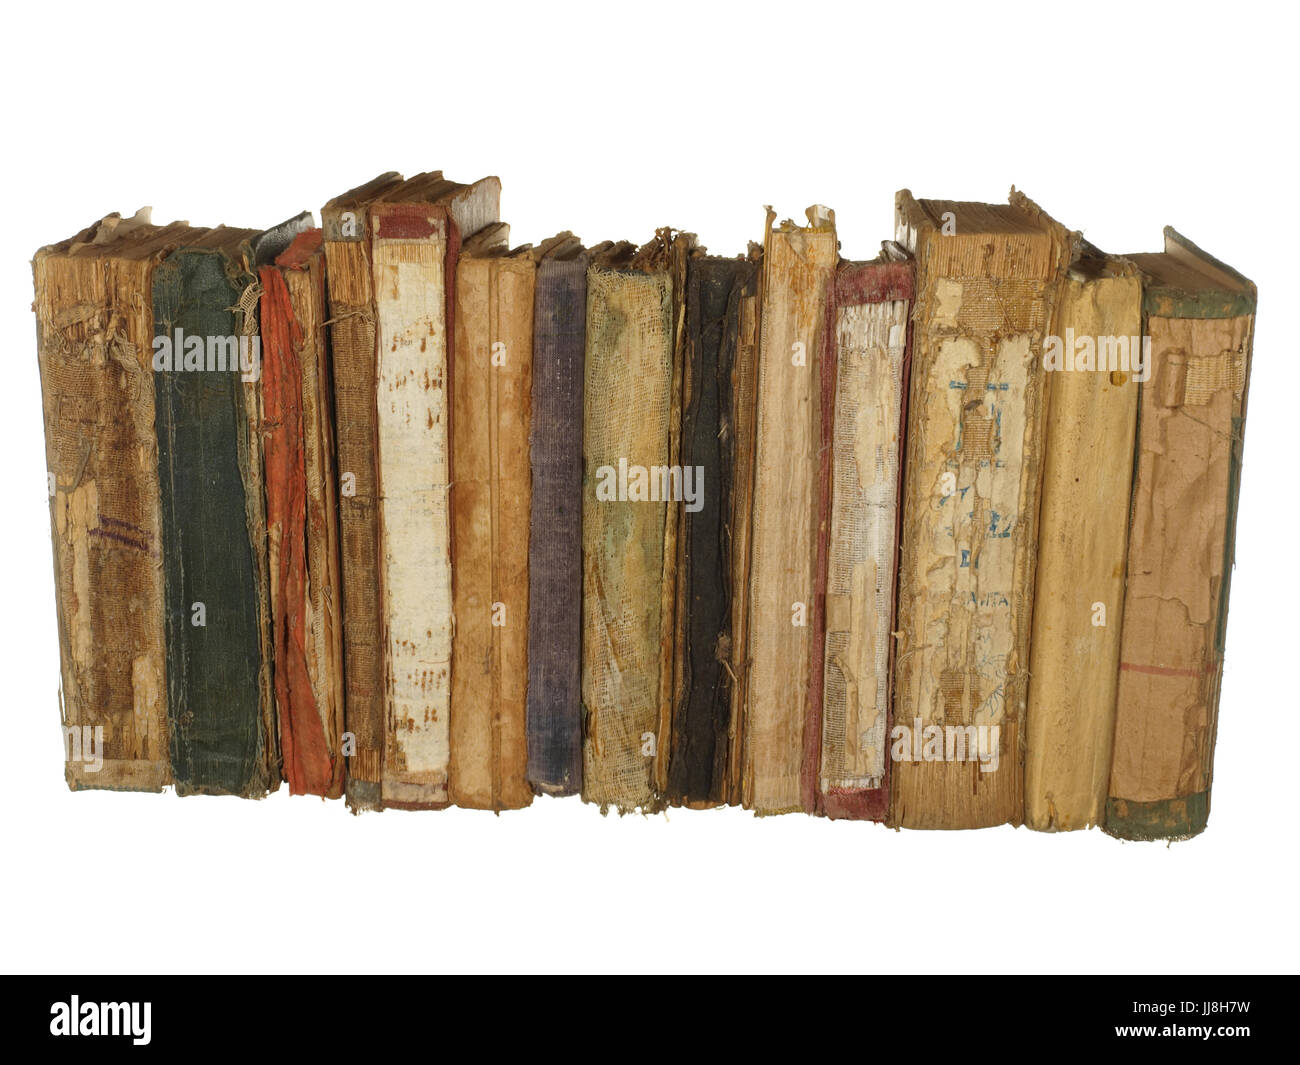 Very old and worn books isolated on white background. Stock Photo